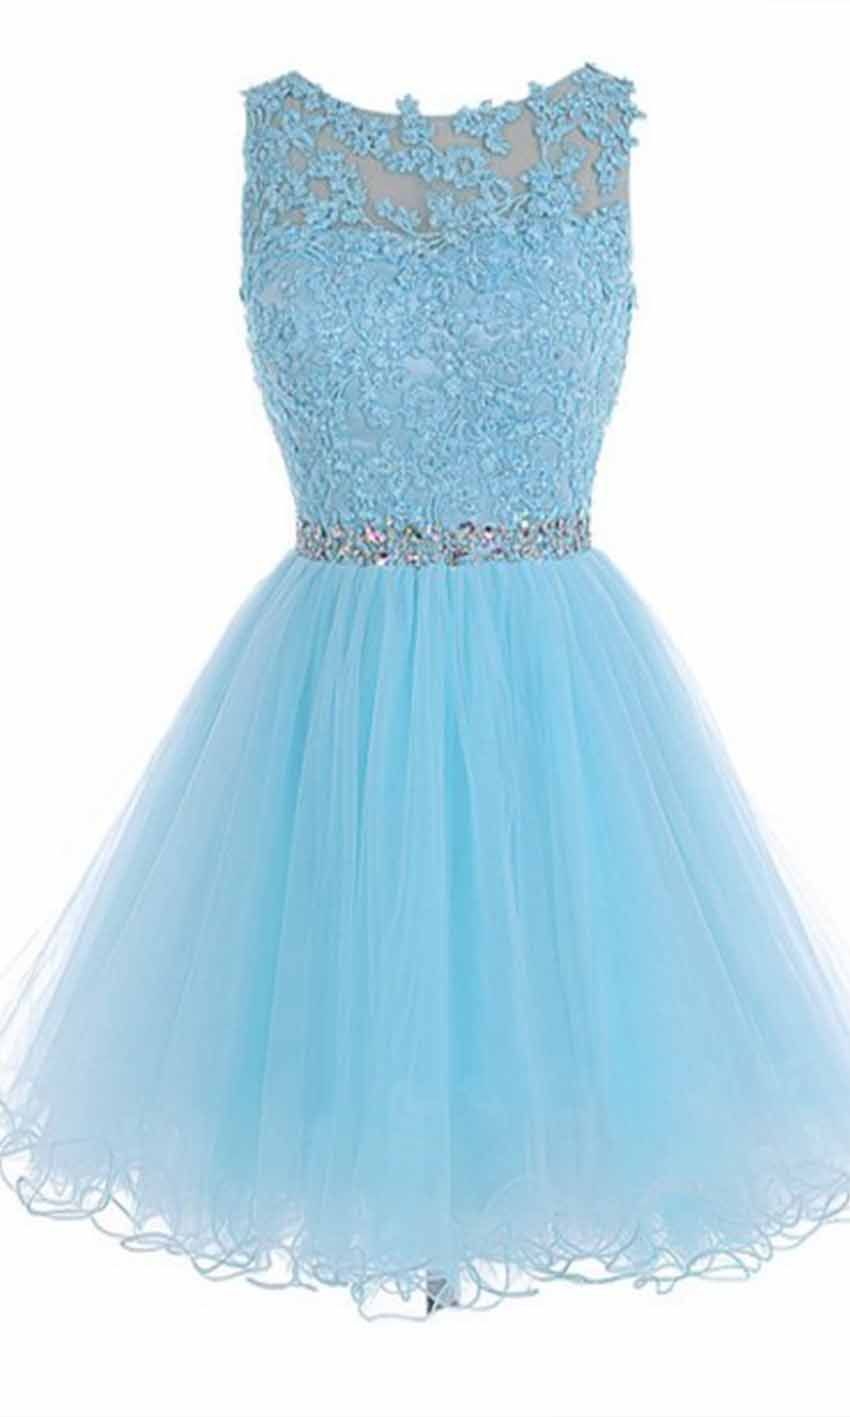 Sky Blue High Illusion Short Lace Prom Dresses KSP455 | dresses ...